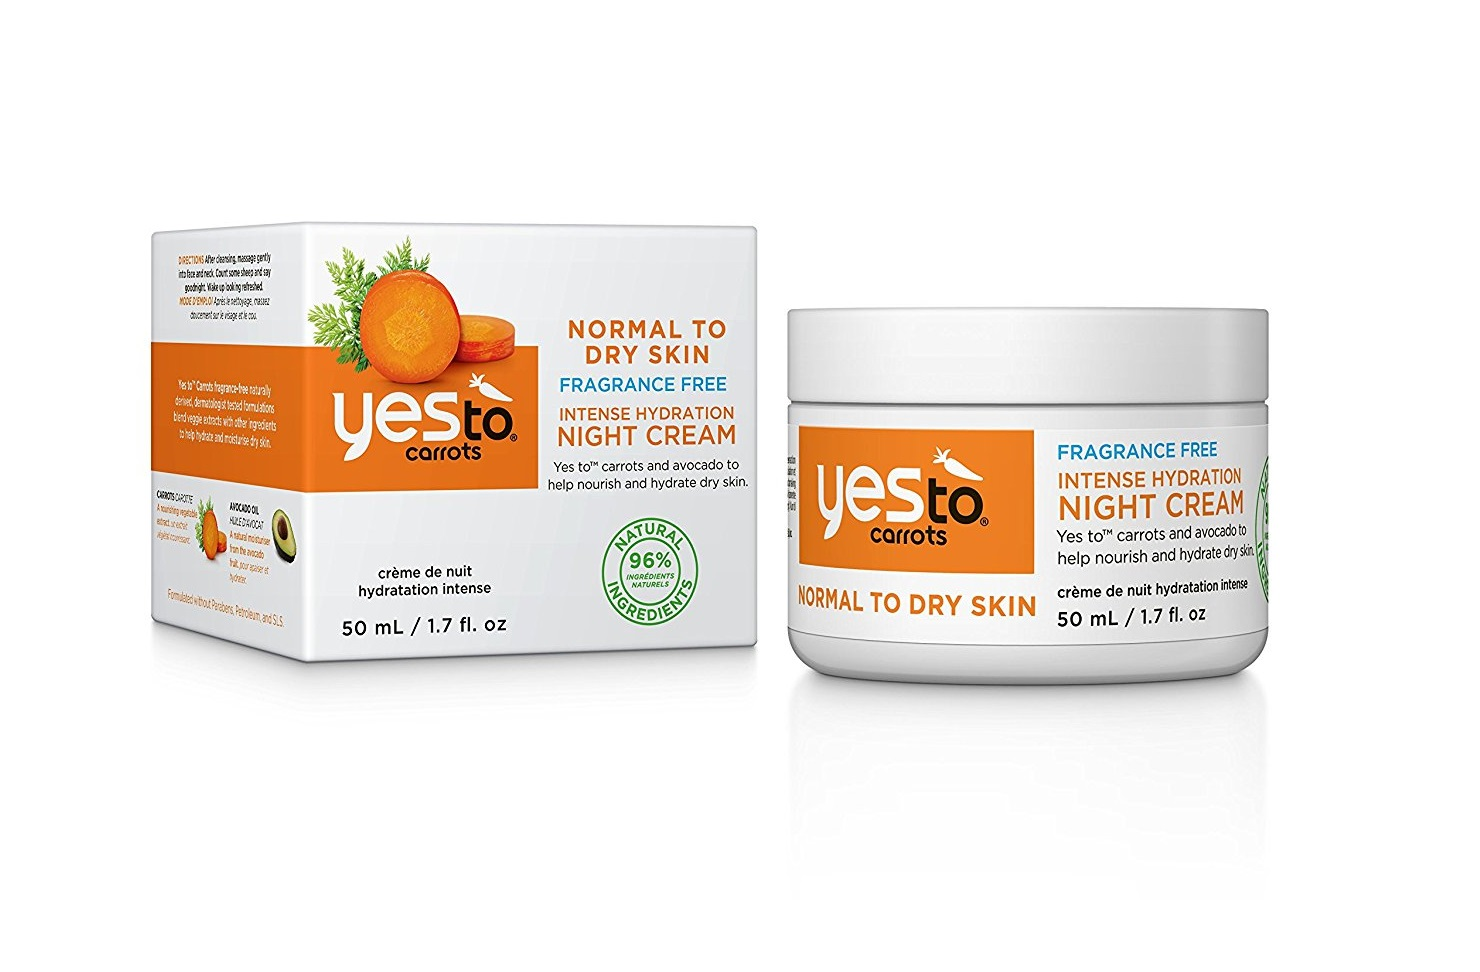 Yes To Carrots Normal To Dry Skin, Fragrance Free, Intense Hydration Night Cream, 1.7 Oz (Pack of 3) Clean & Clear Advantage Acne Treatment Control Kit For Clear Skin, Three-step acne prevention skincare regimen By Clean Clear